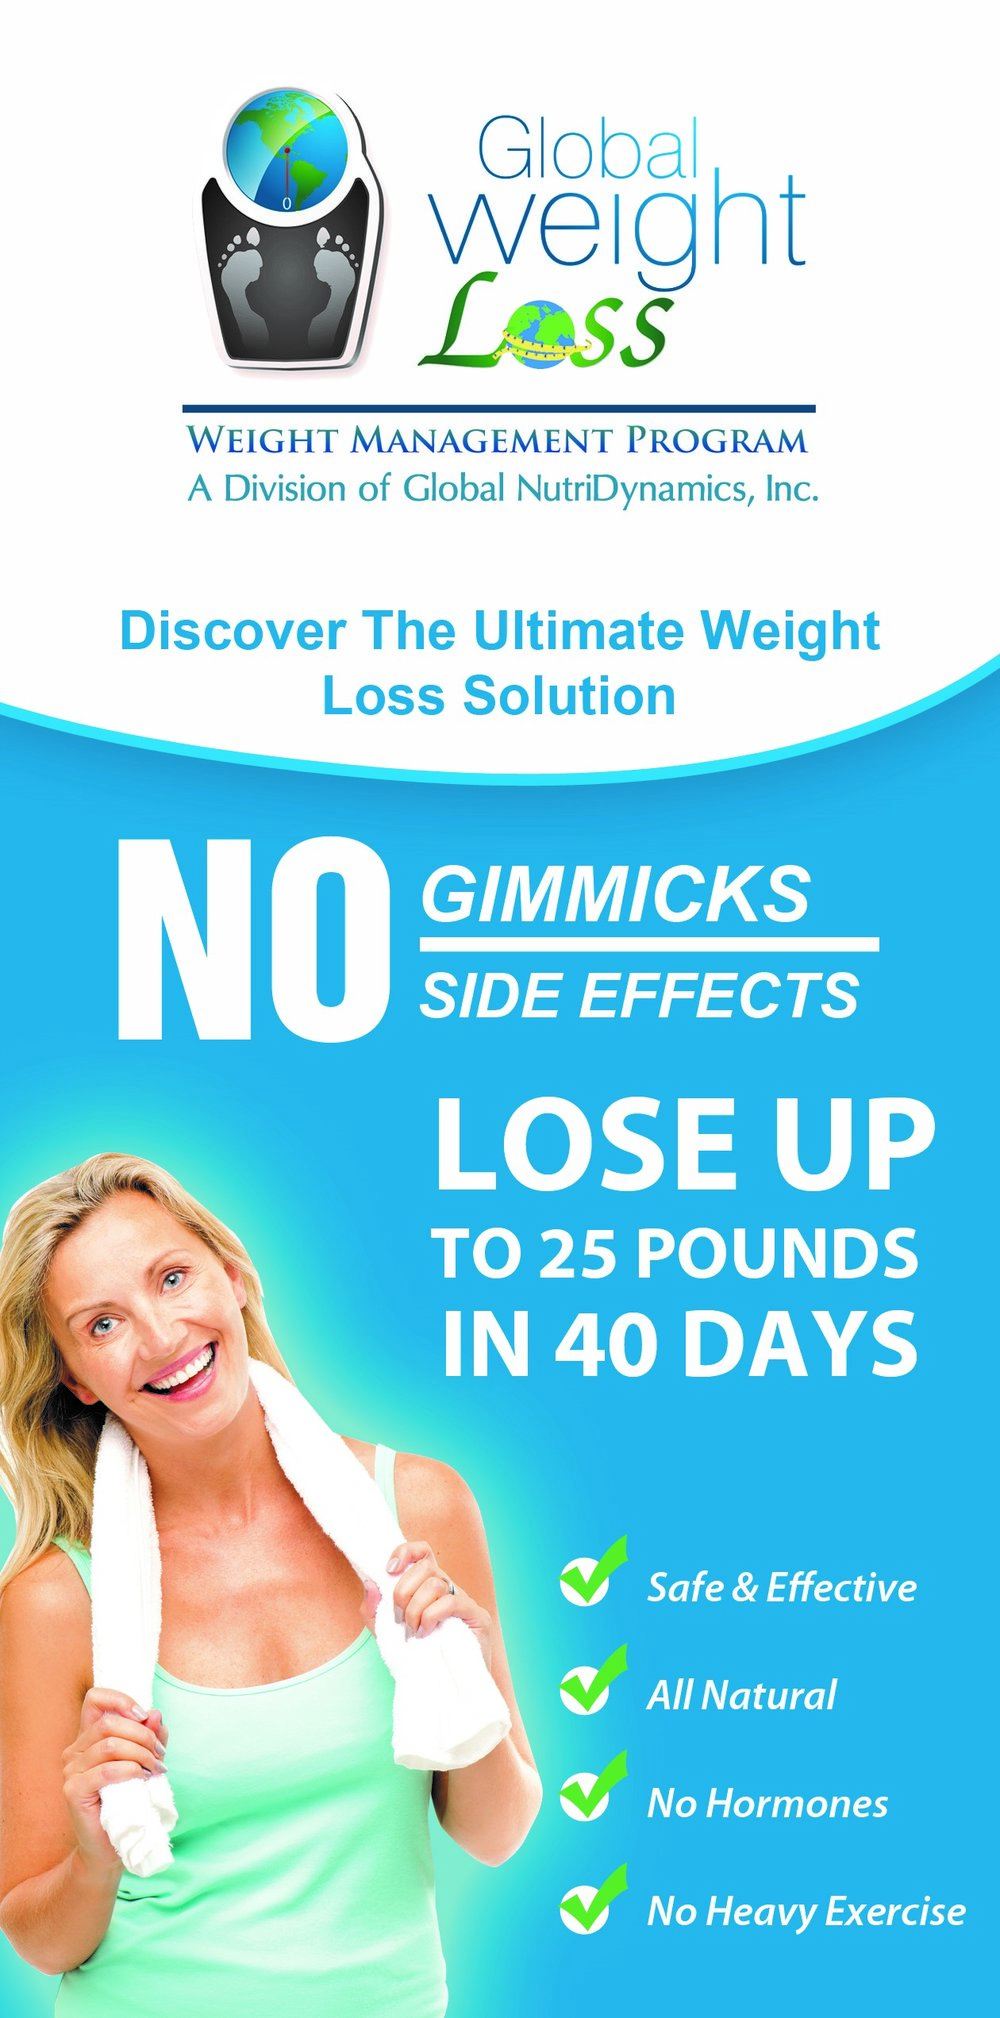 global weight loss solutions for living well